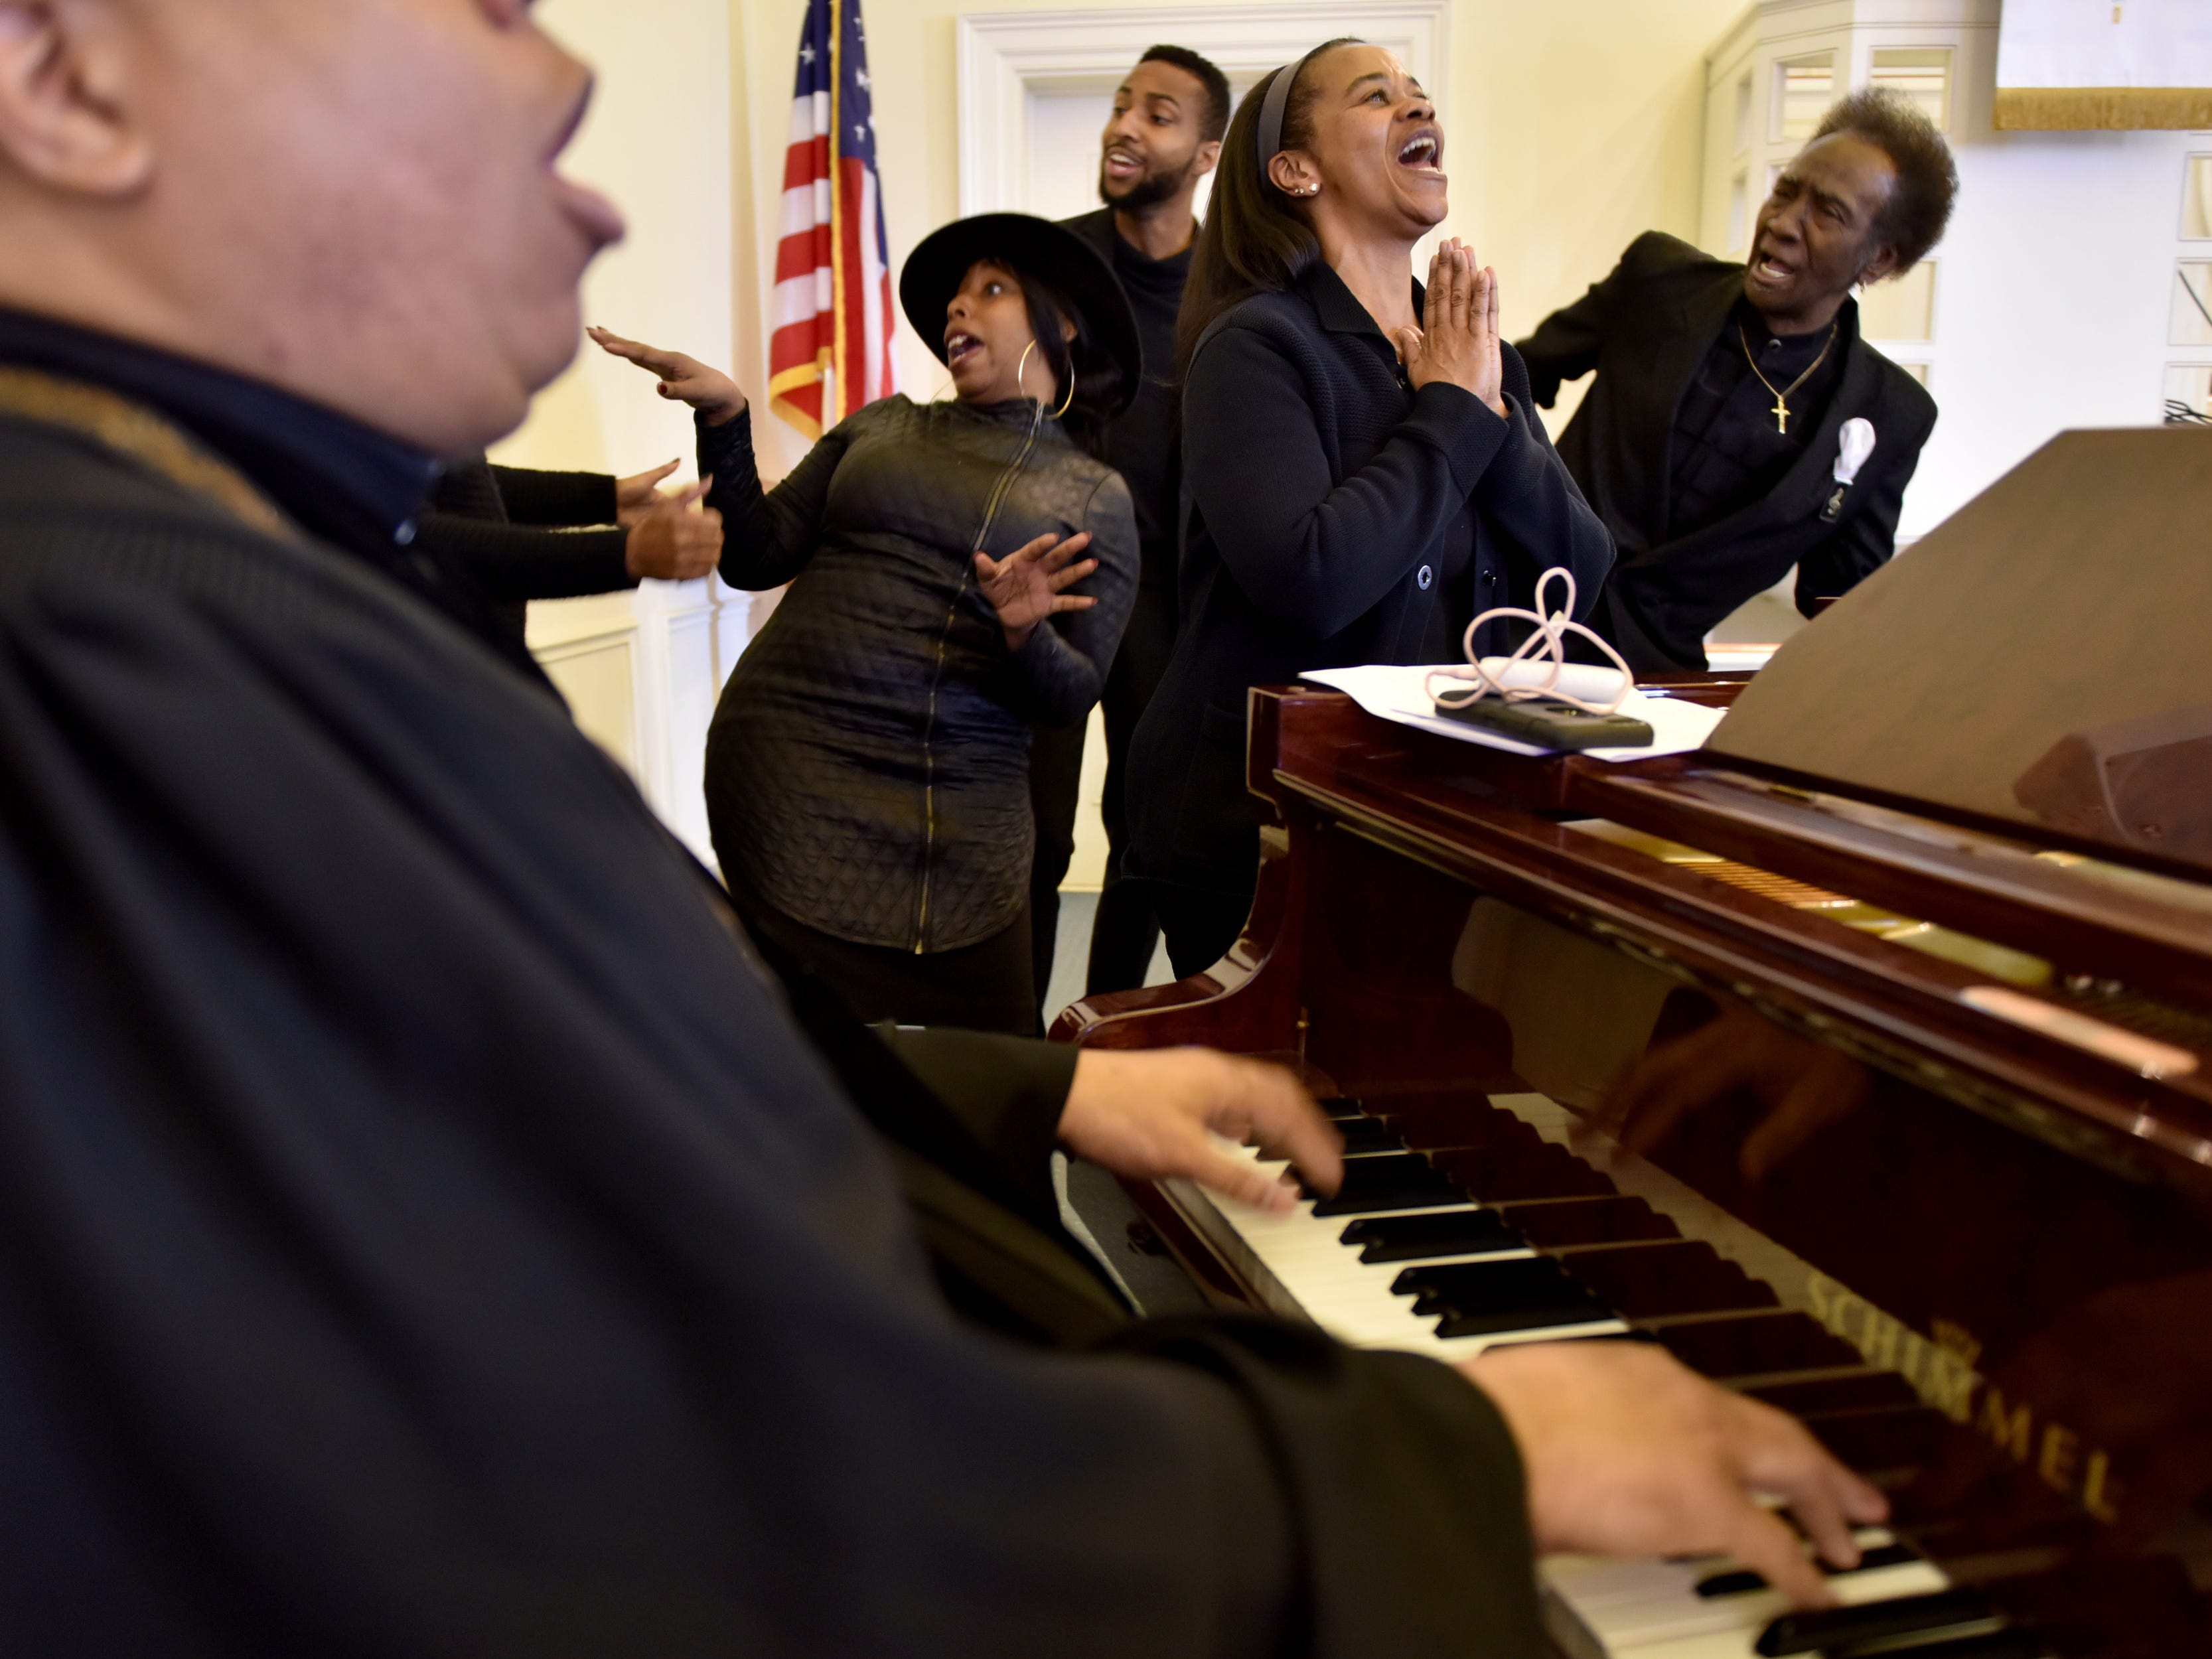 Rev. Mark Brandon and The Connection of the Metropolitan A.M.E. Zion Church in  Ridgewood, N.J. perform during their celebration.